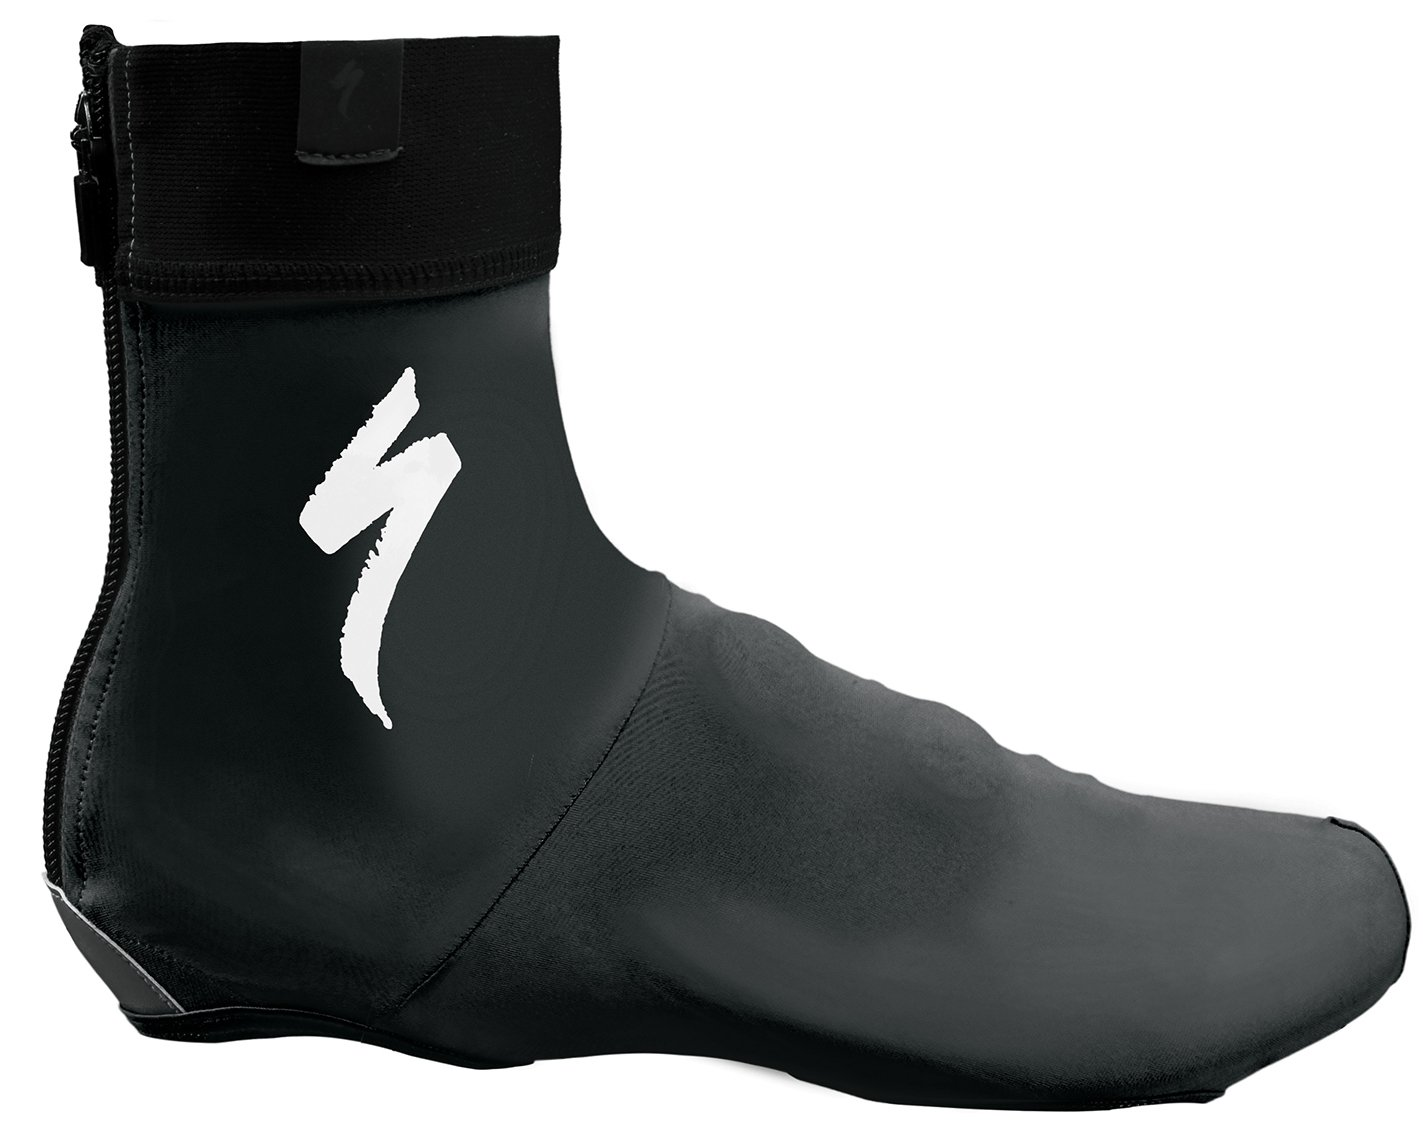 Specialized Shoe Cover with S-Logo S